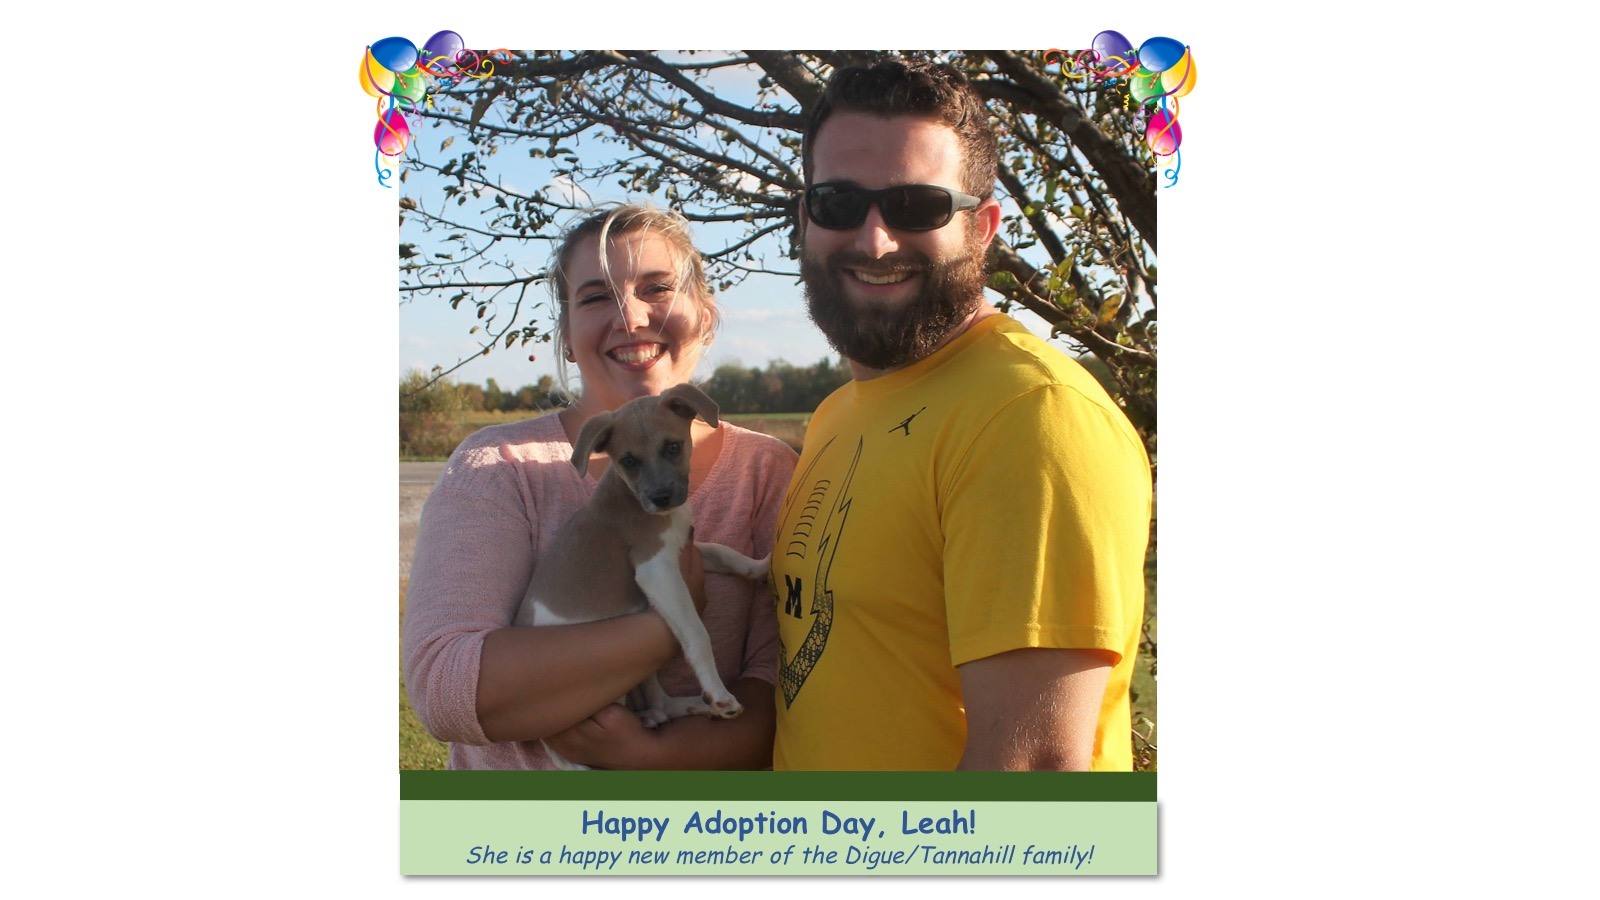 Leah_Adoption_photo99235.jpg